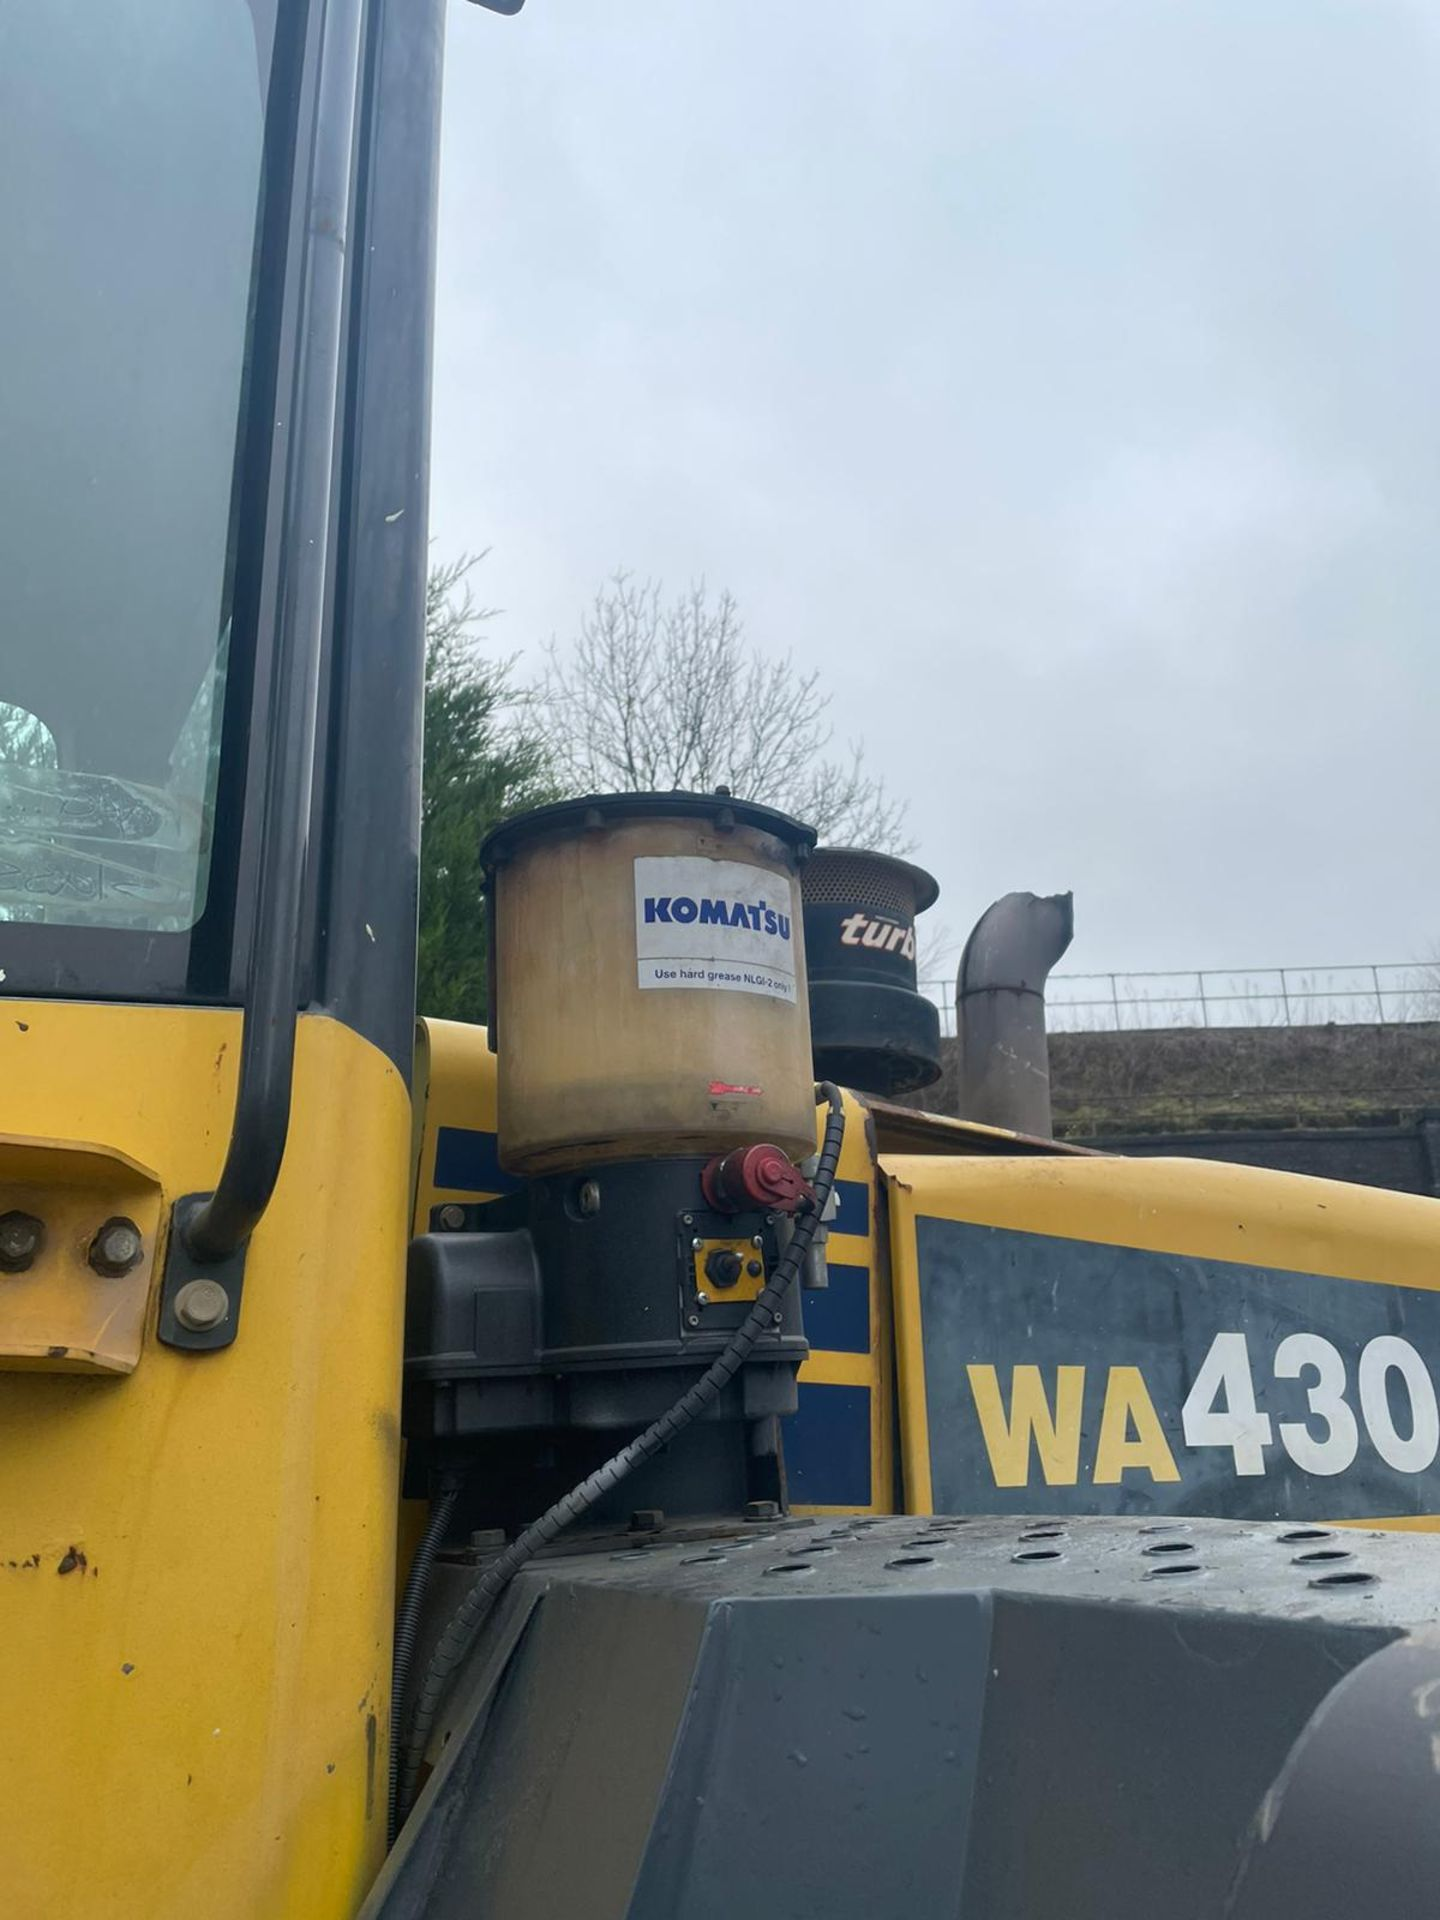 KOMATSU WA430 LOADING SHOVEL, HIGH TIP BUCKET, AUTO GREASING, SOLID TYRES, YEAR 2009 *PLUS VAT* - Image 5 of 8